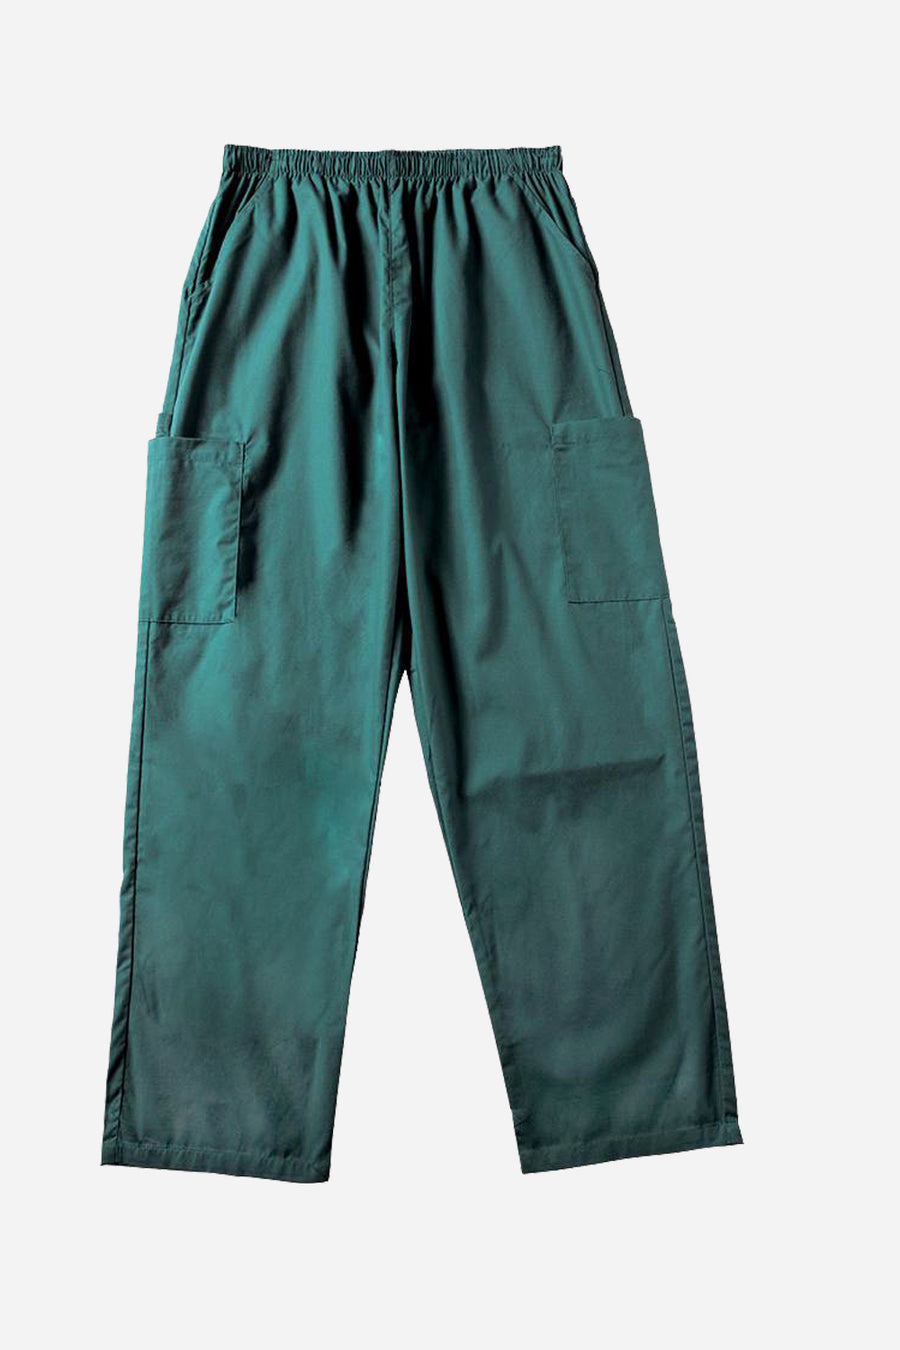 Green scrub pants men's